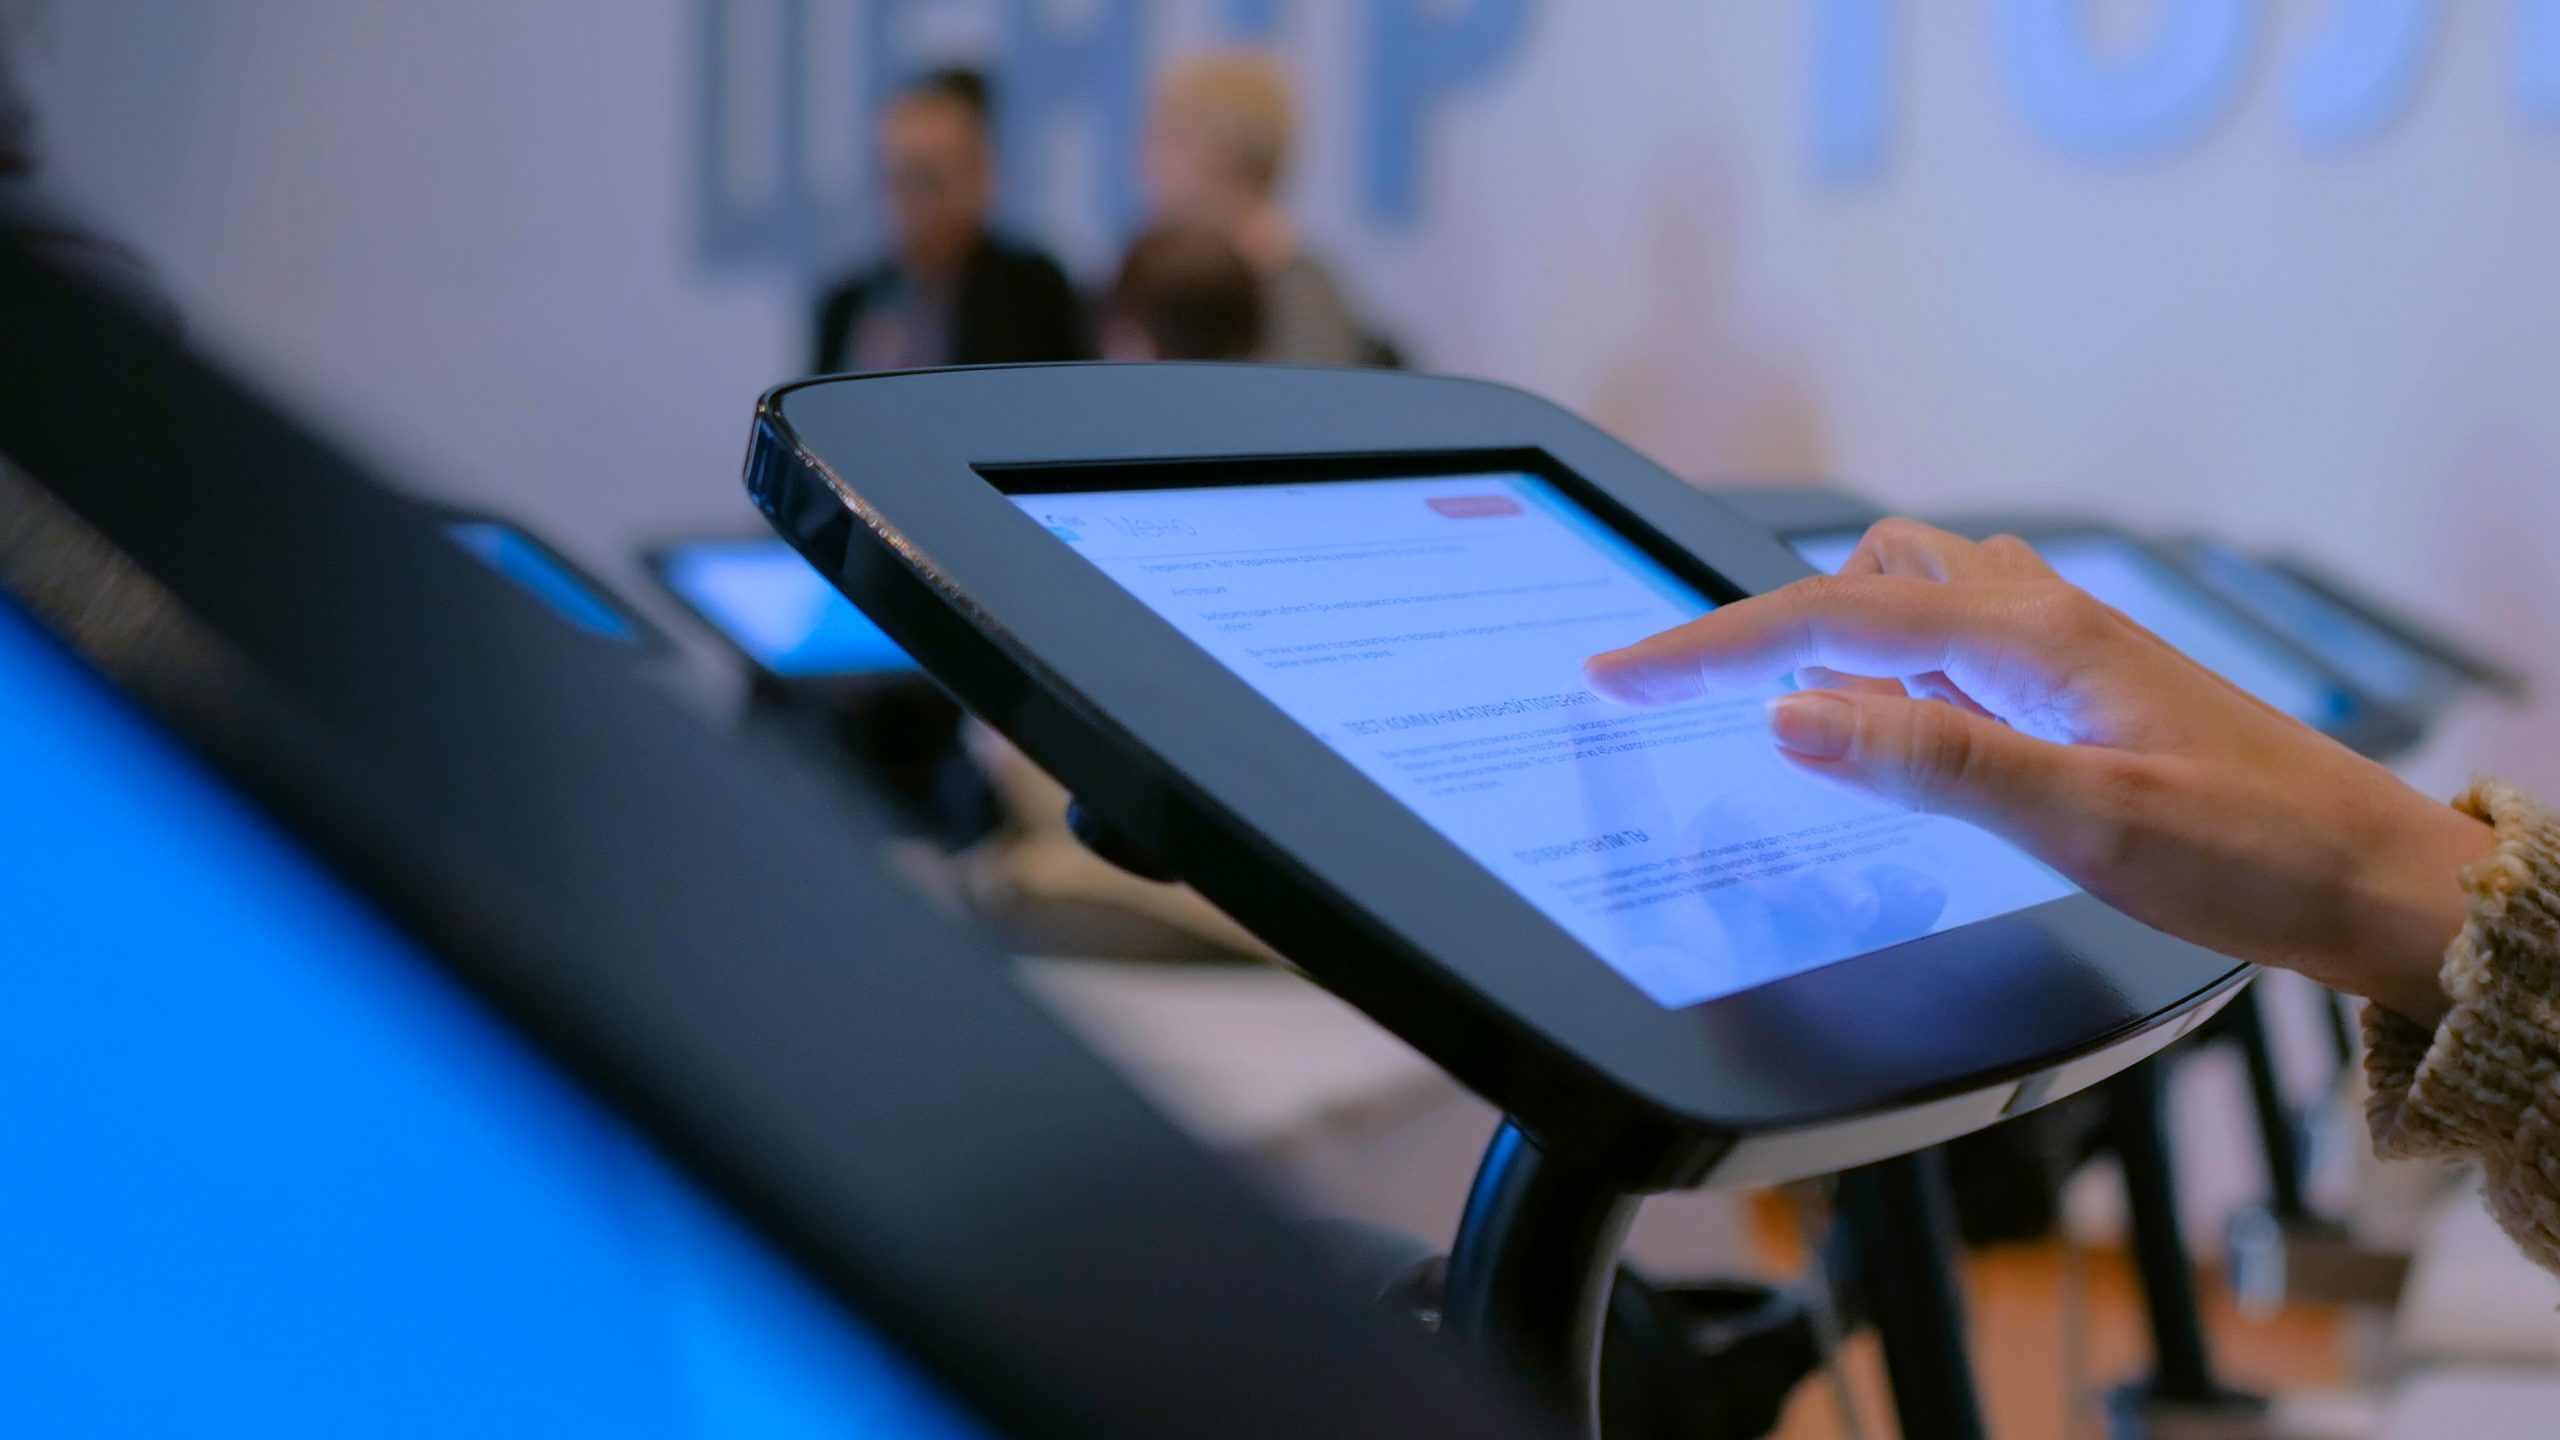 Ensuring smooth kiosk exit in dedicated devices